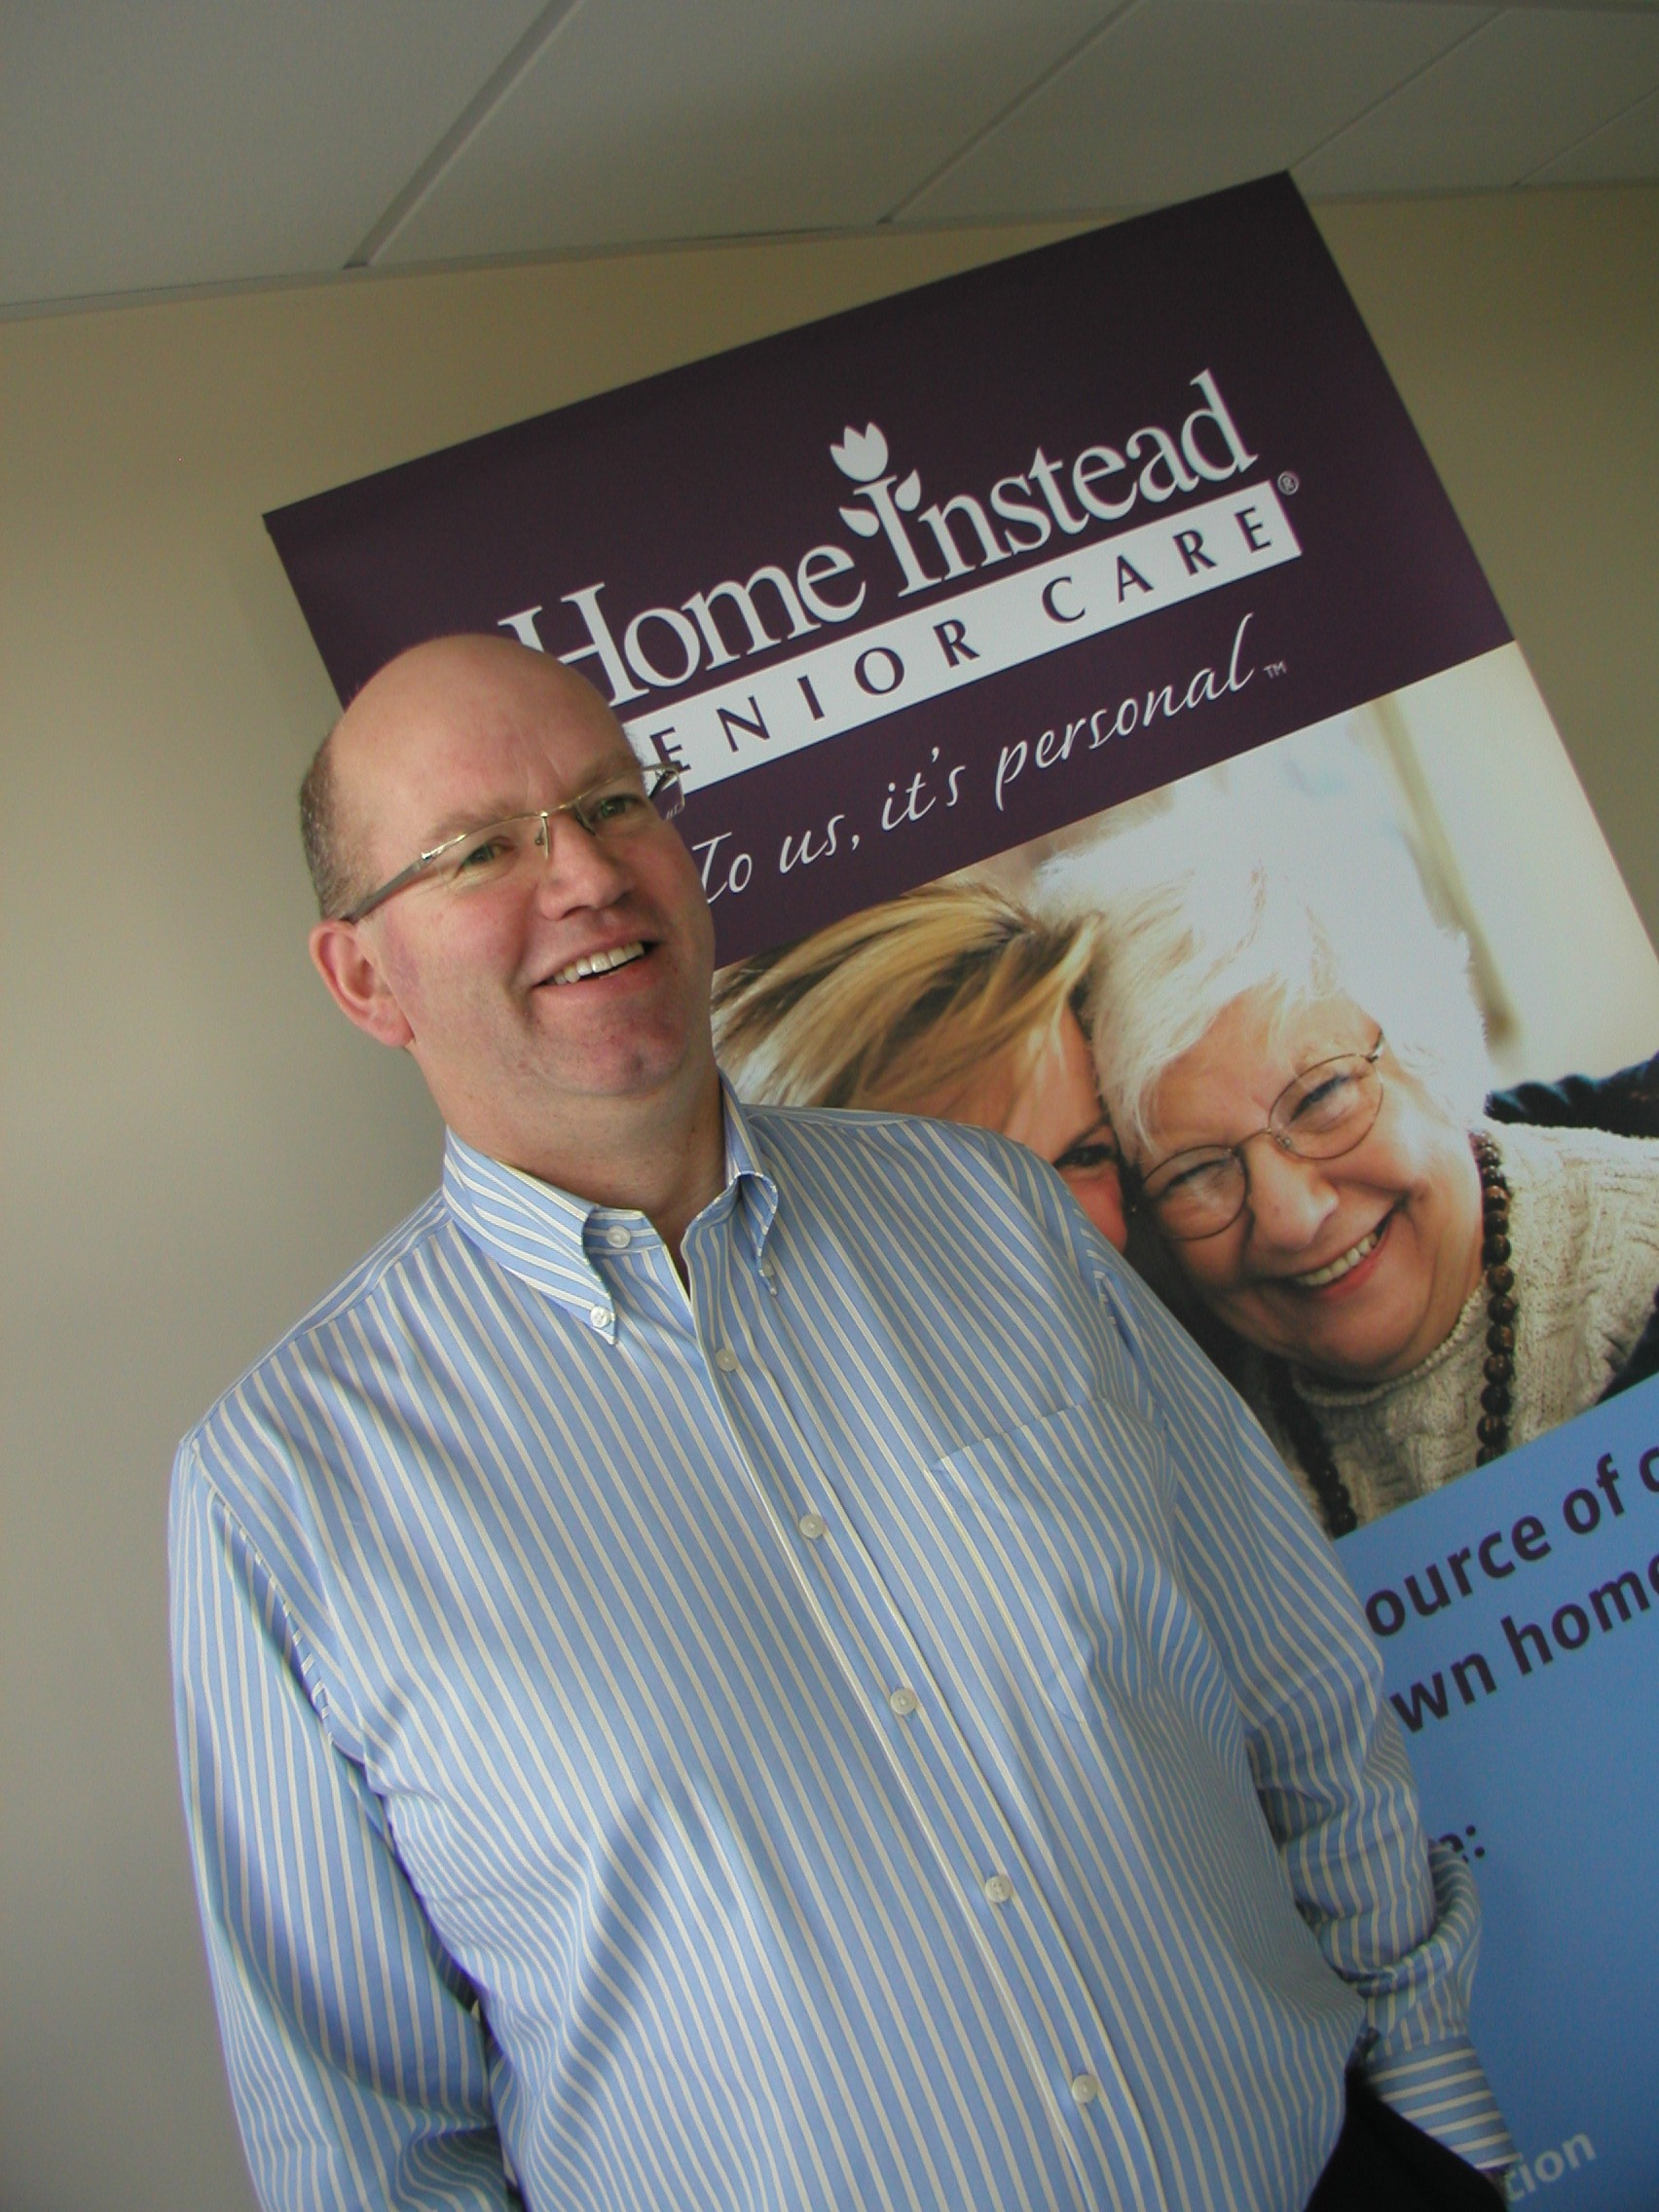 Home Instead Senior Care Warwickshire Phil Maundrill